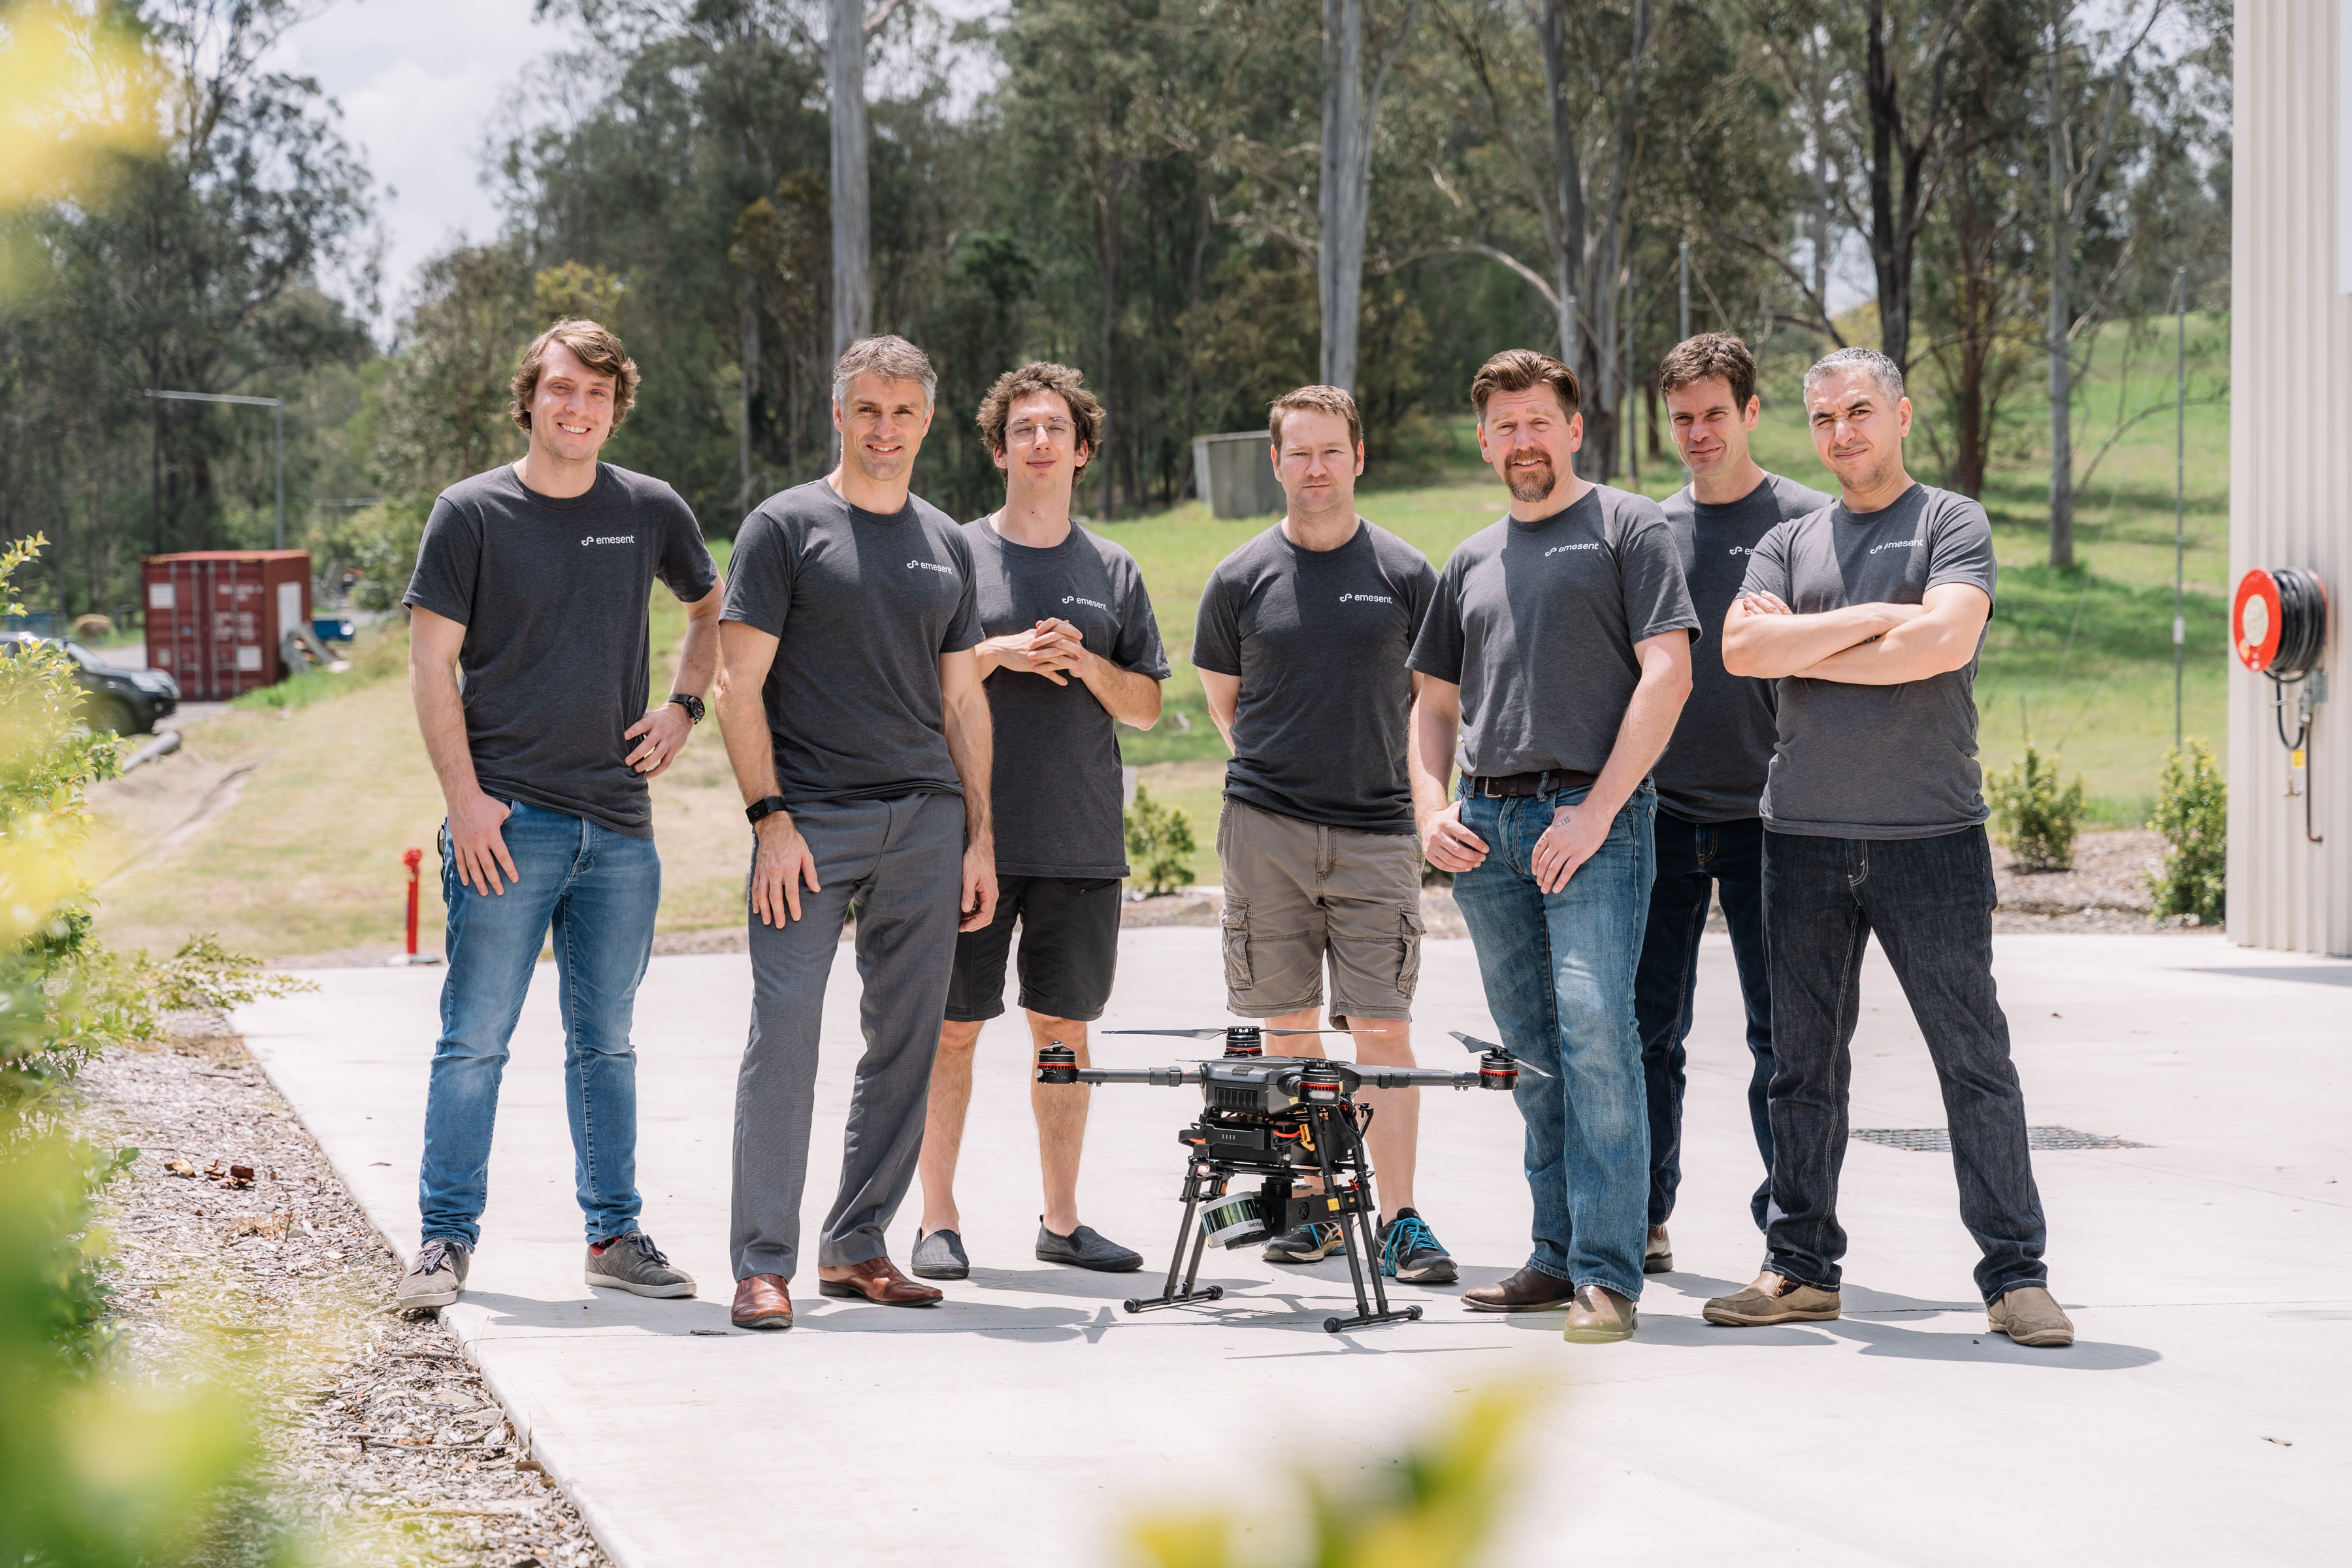 The Emesent team standing outside behind a drone on the ground.